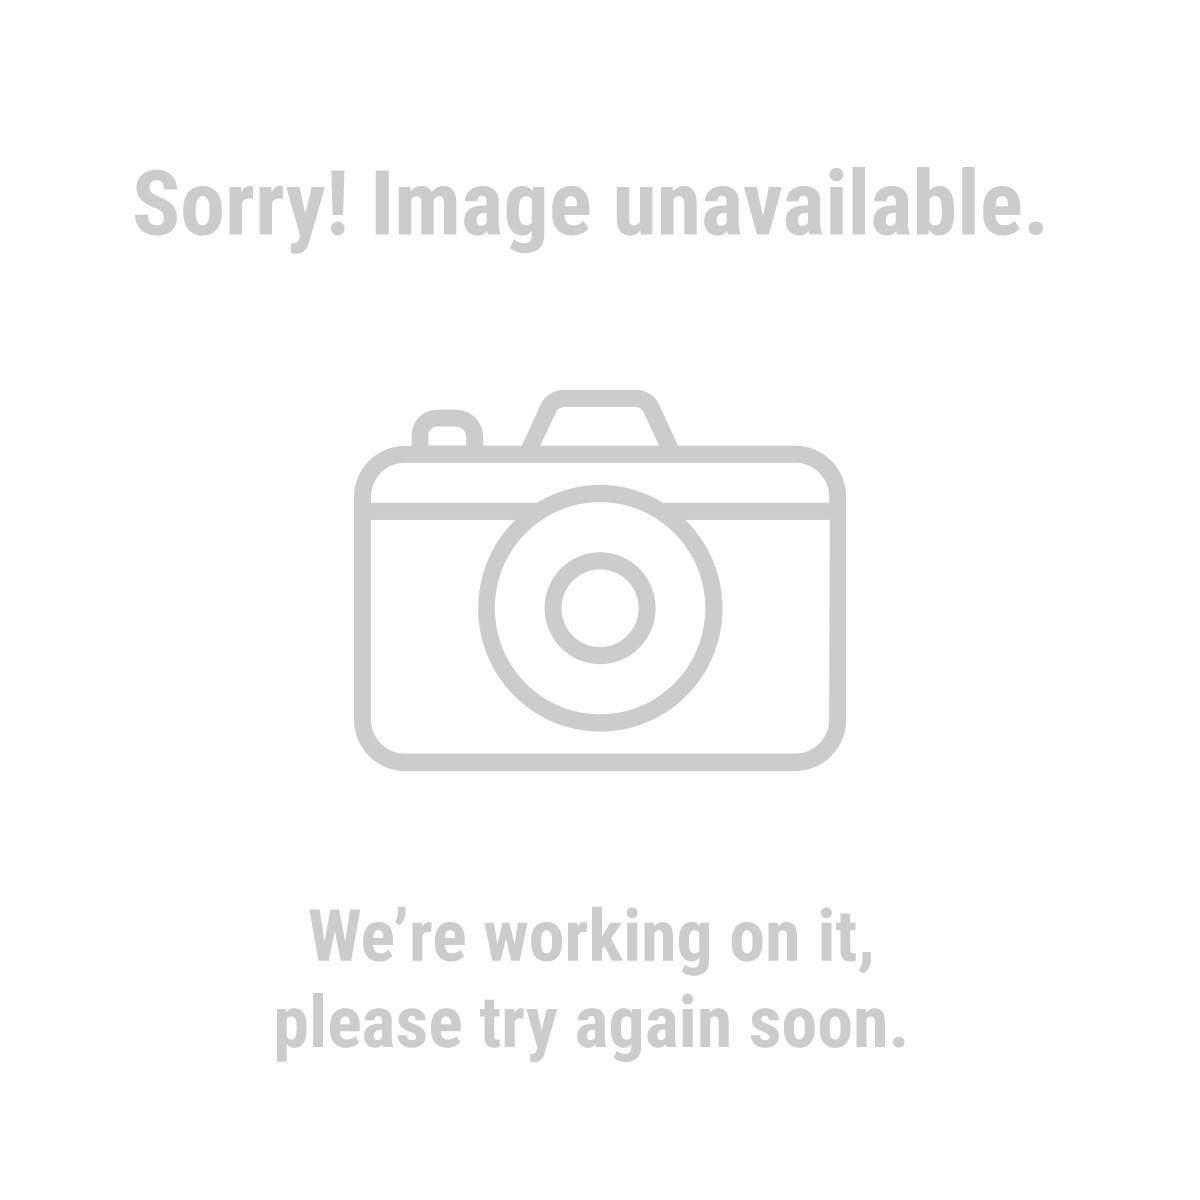 Warrior 69620 Piece   Grit Sanding Discs